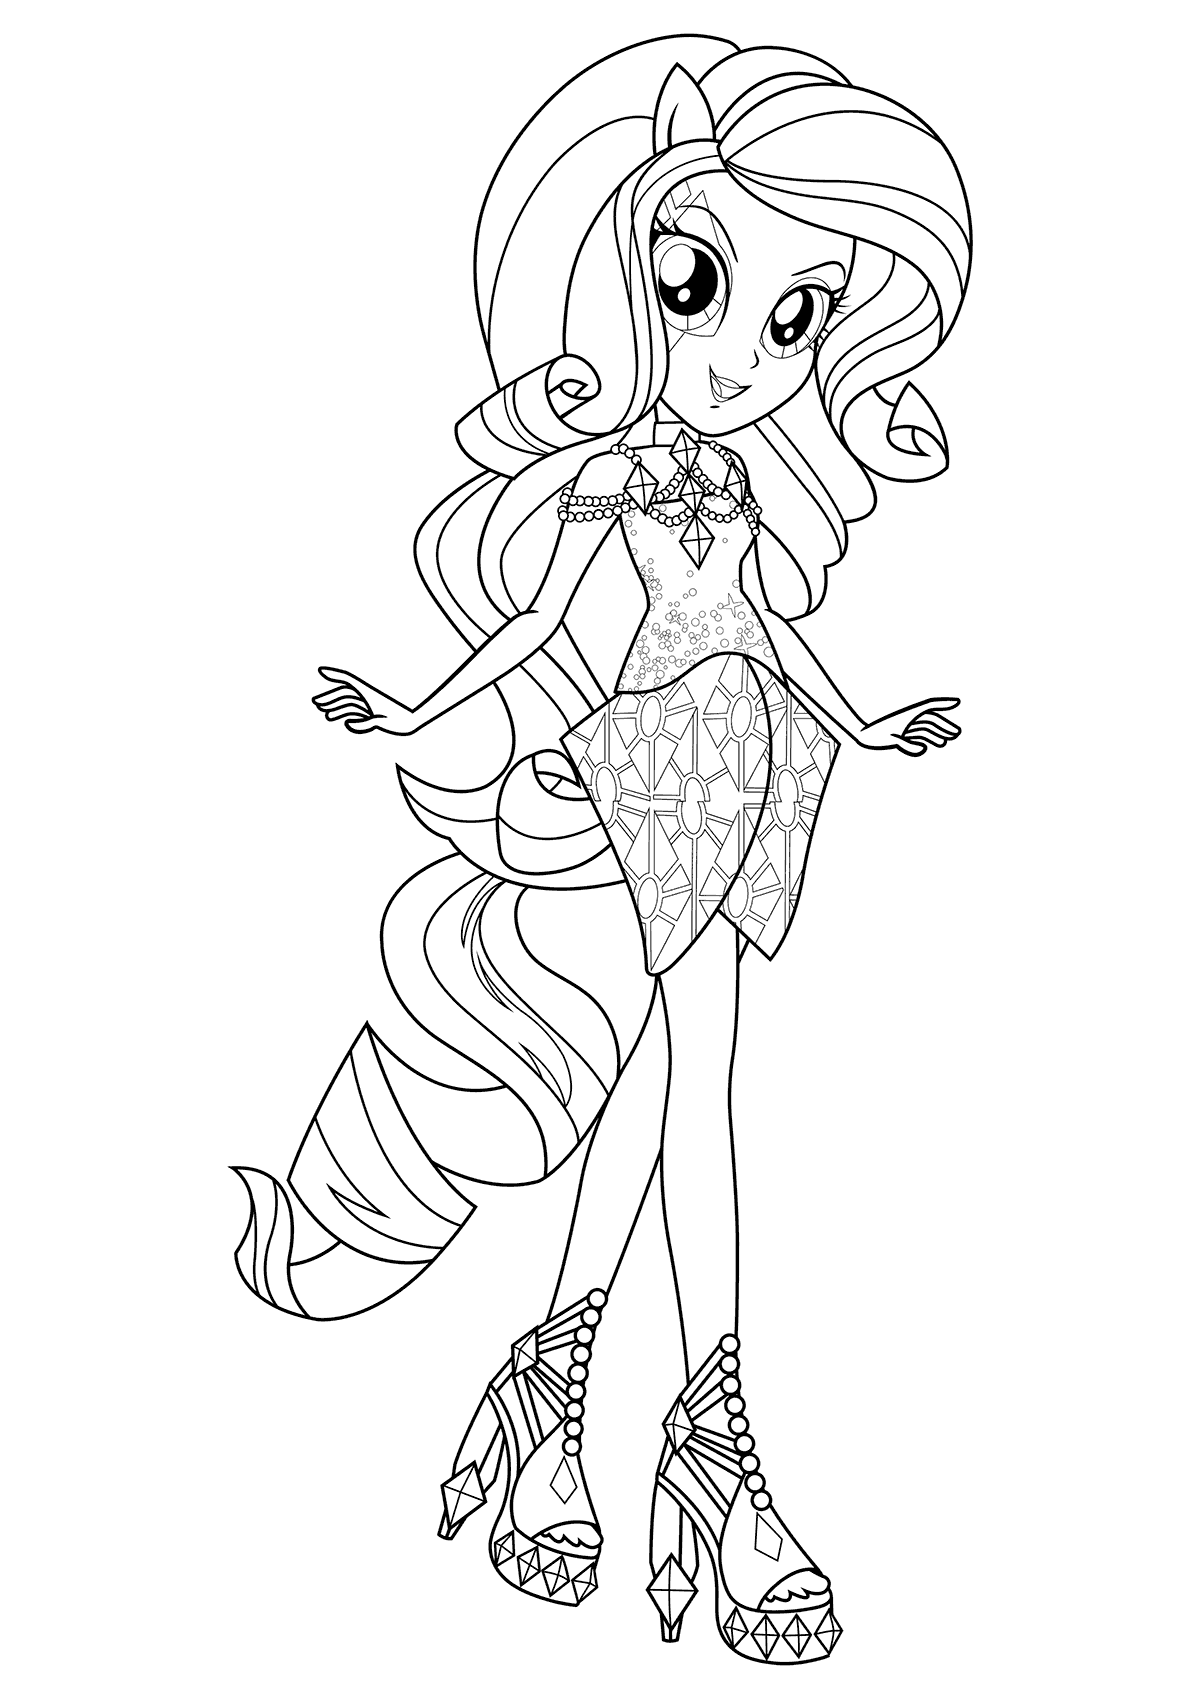 girl colouring pages princess coloring pages for girls free large images pages girl colouring